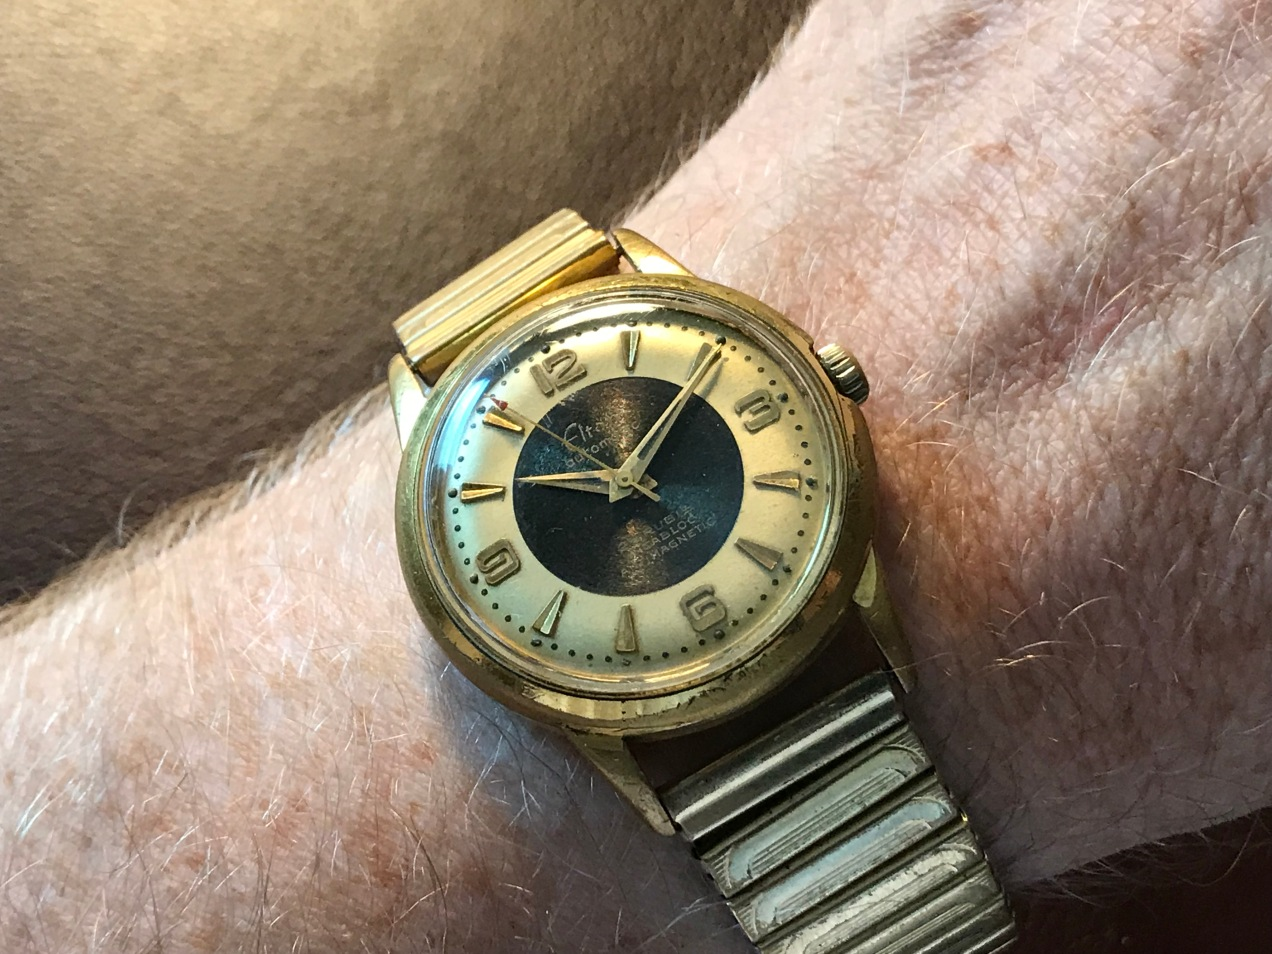 A 1950s Elton Automatic Watch